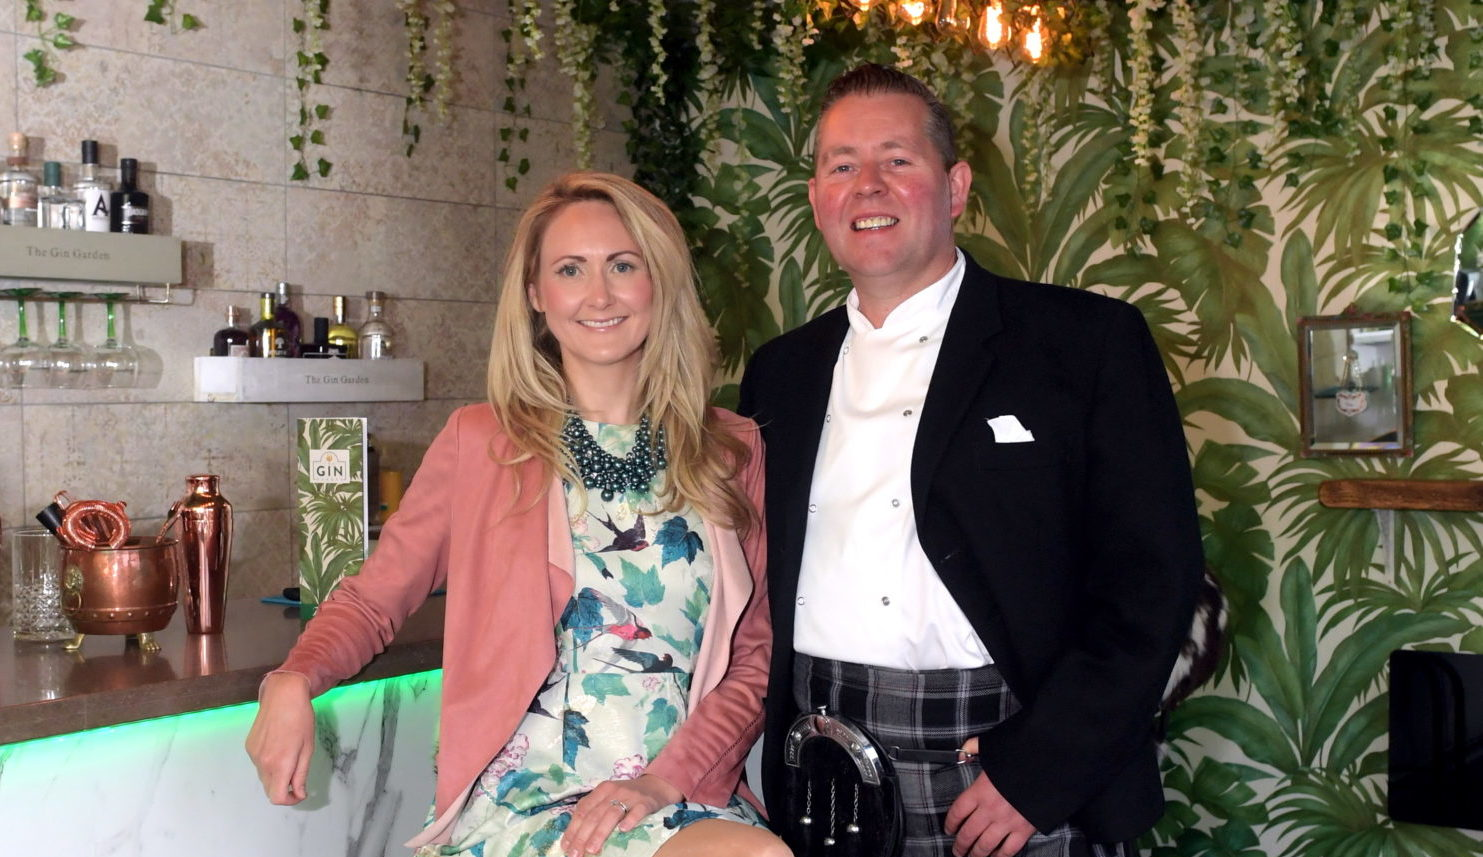 Lindsay and Craig Wilson, owners of Eat on the Green